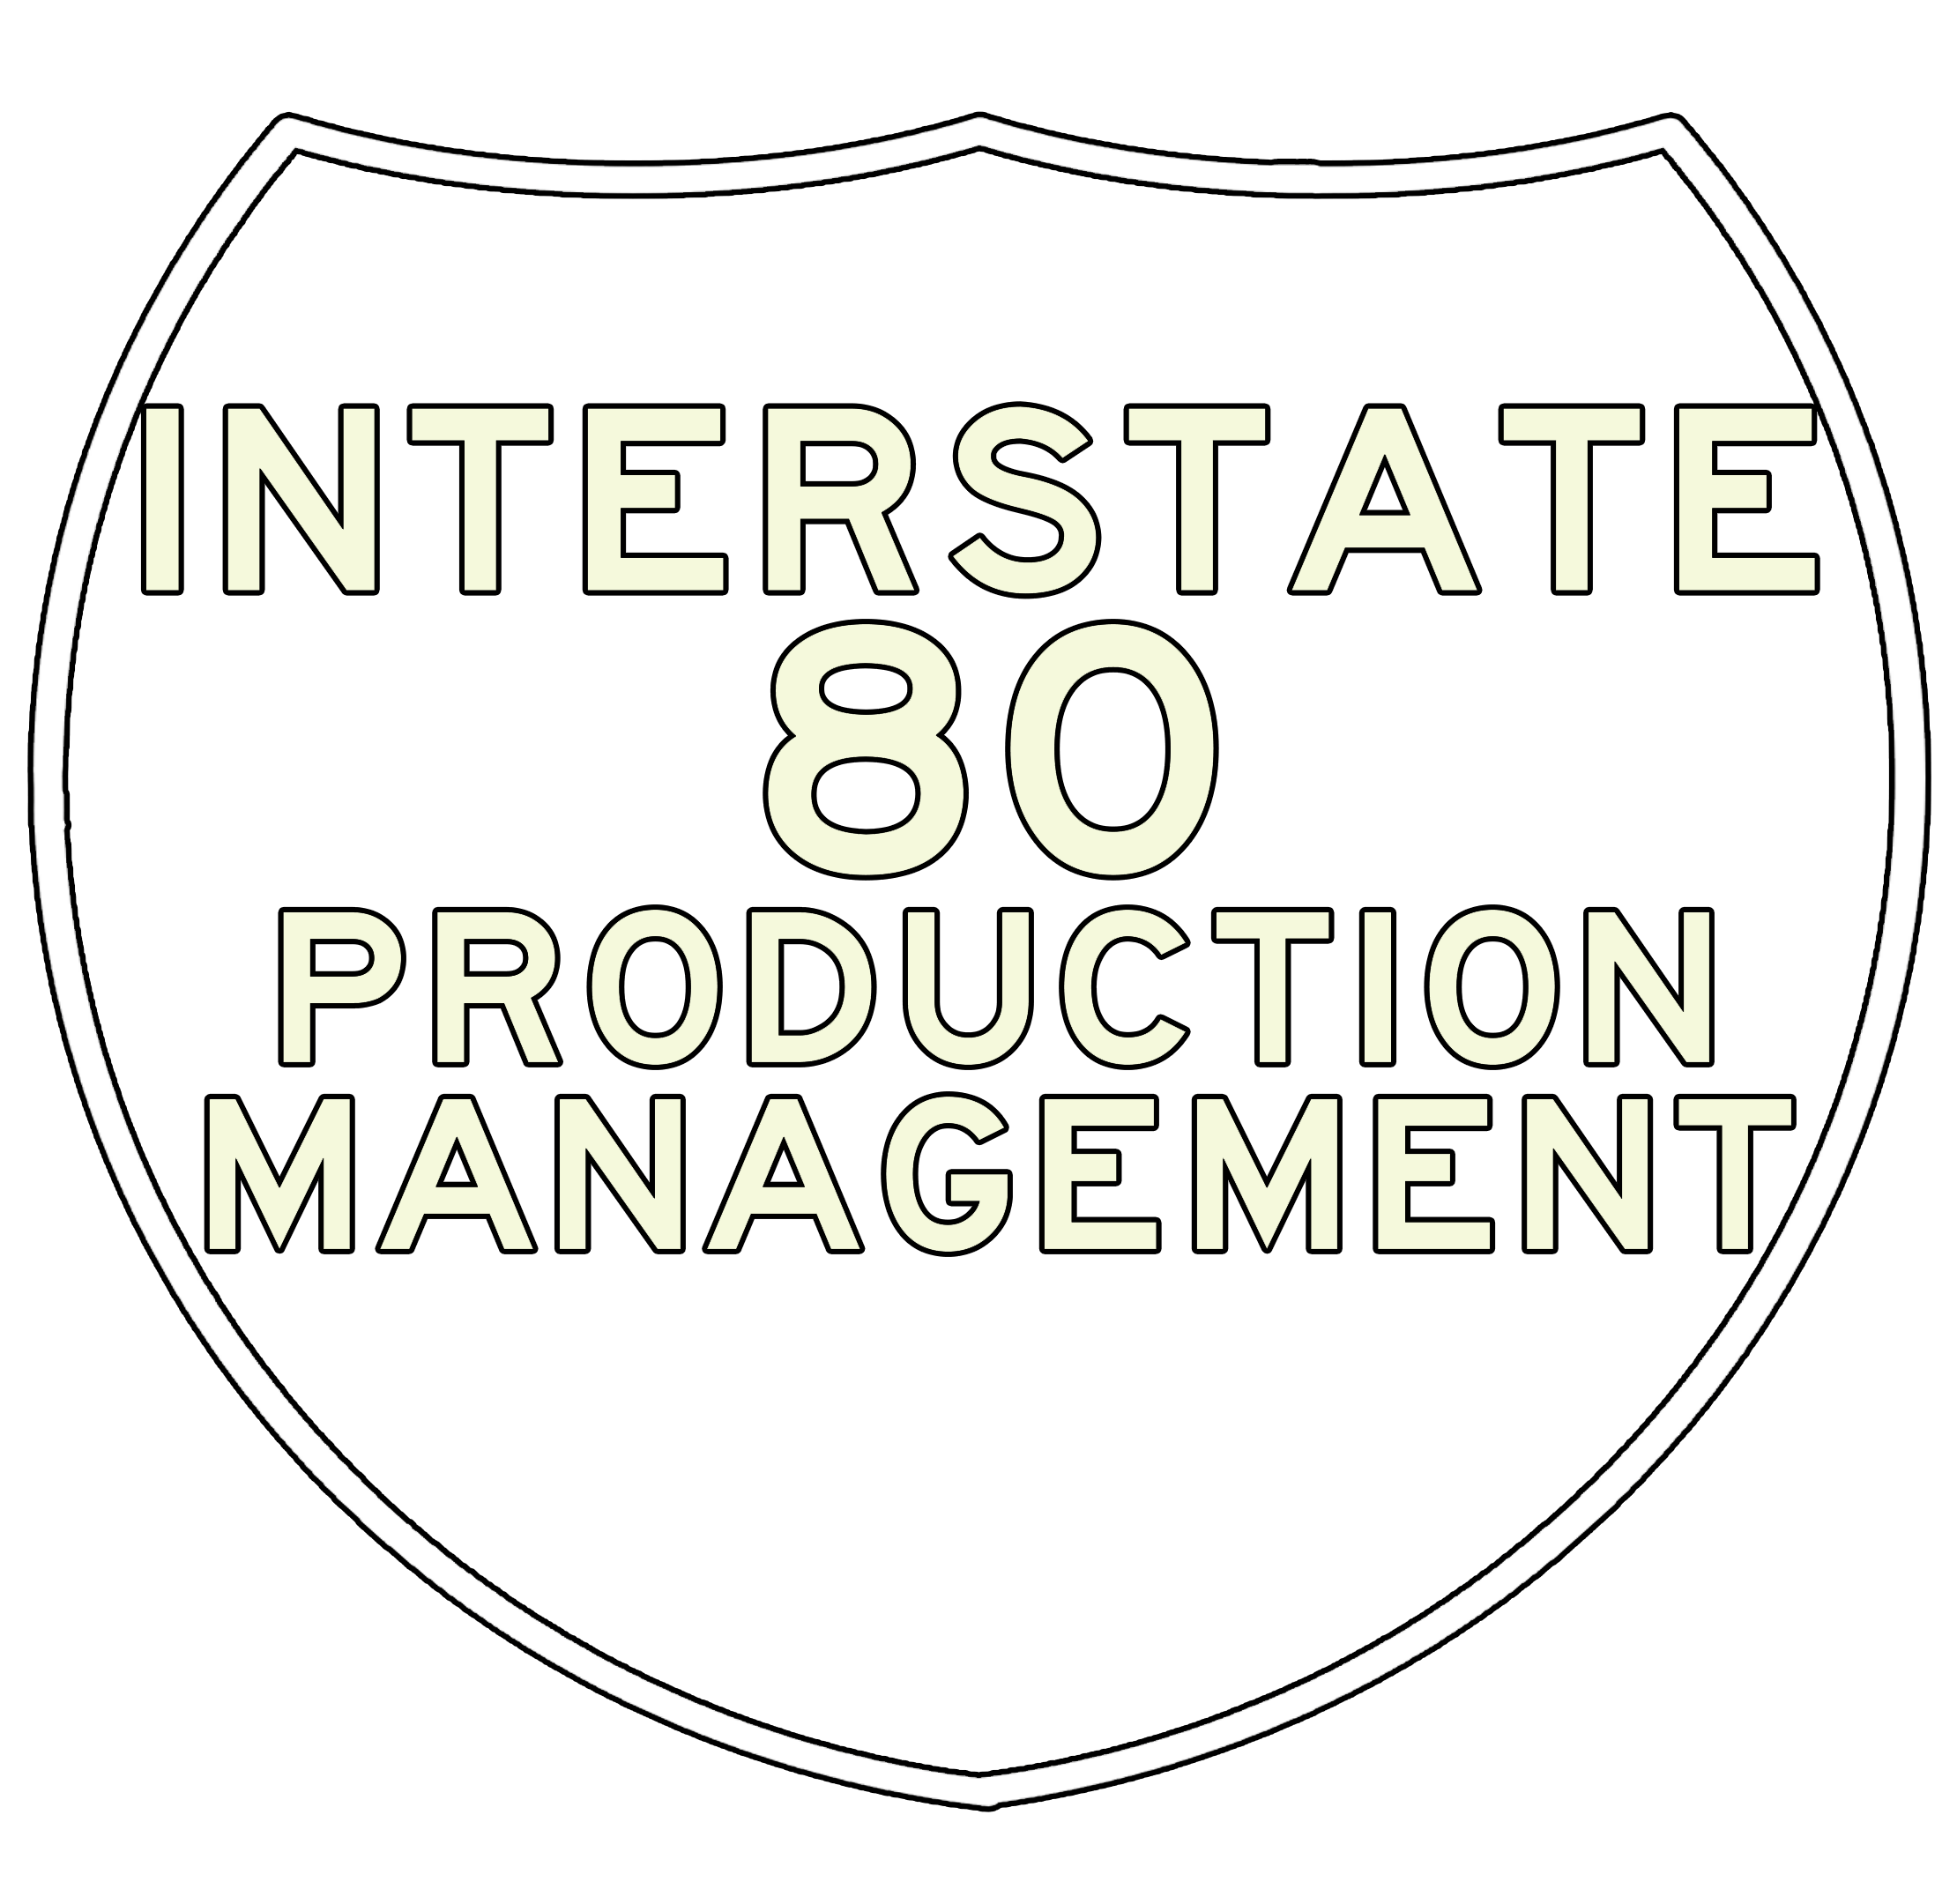 Interstate 80 Production Management